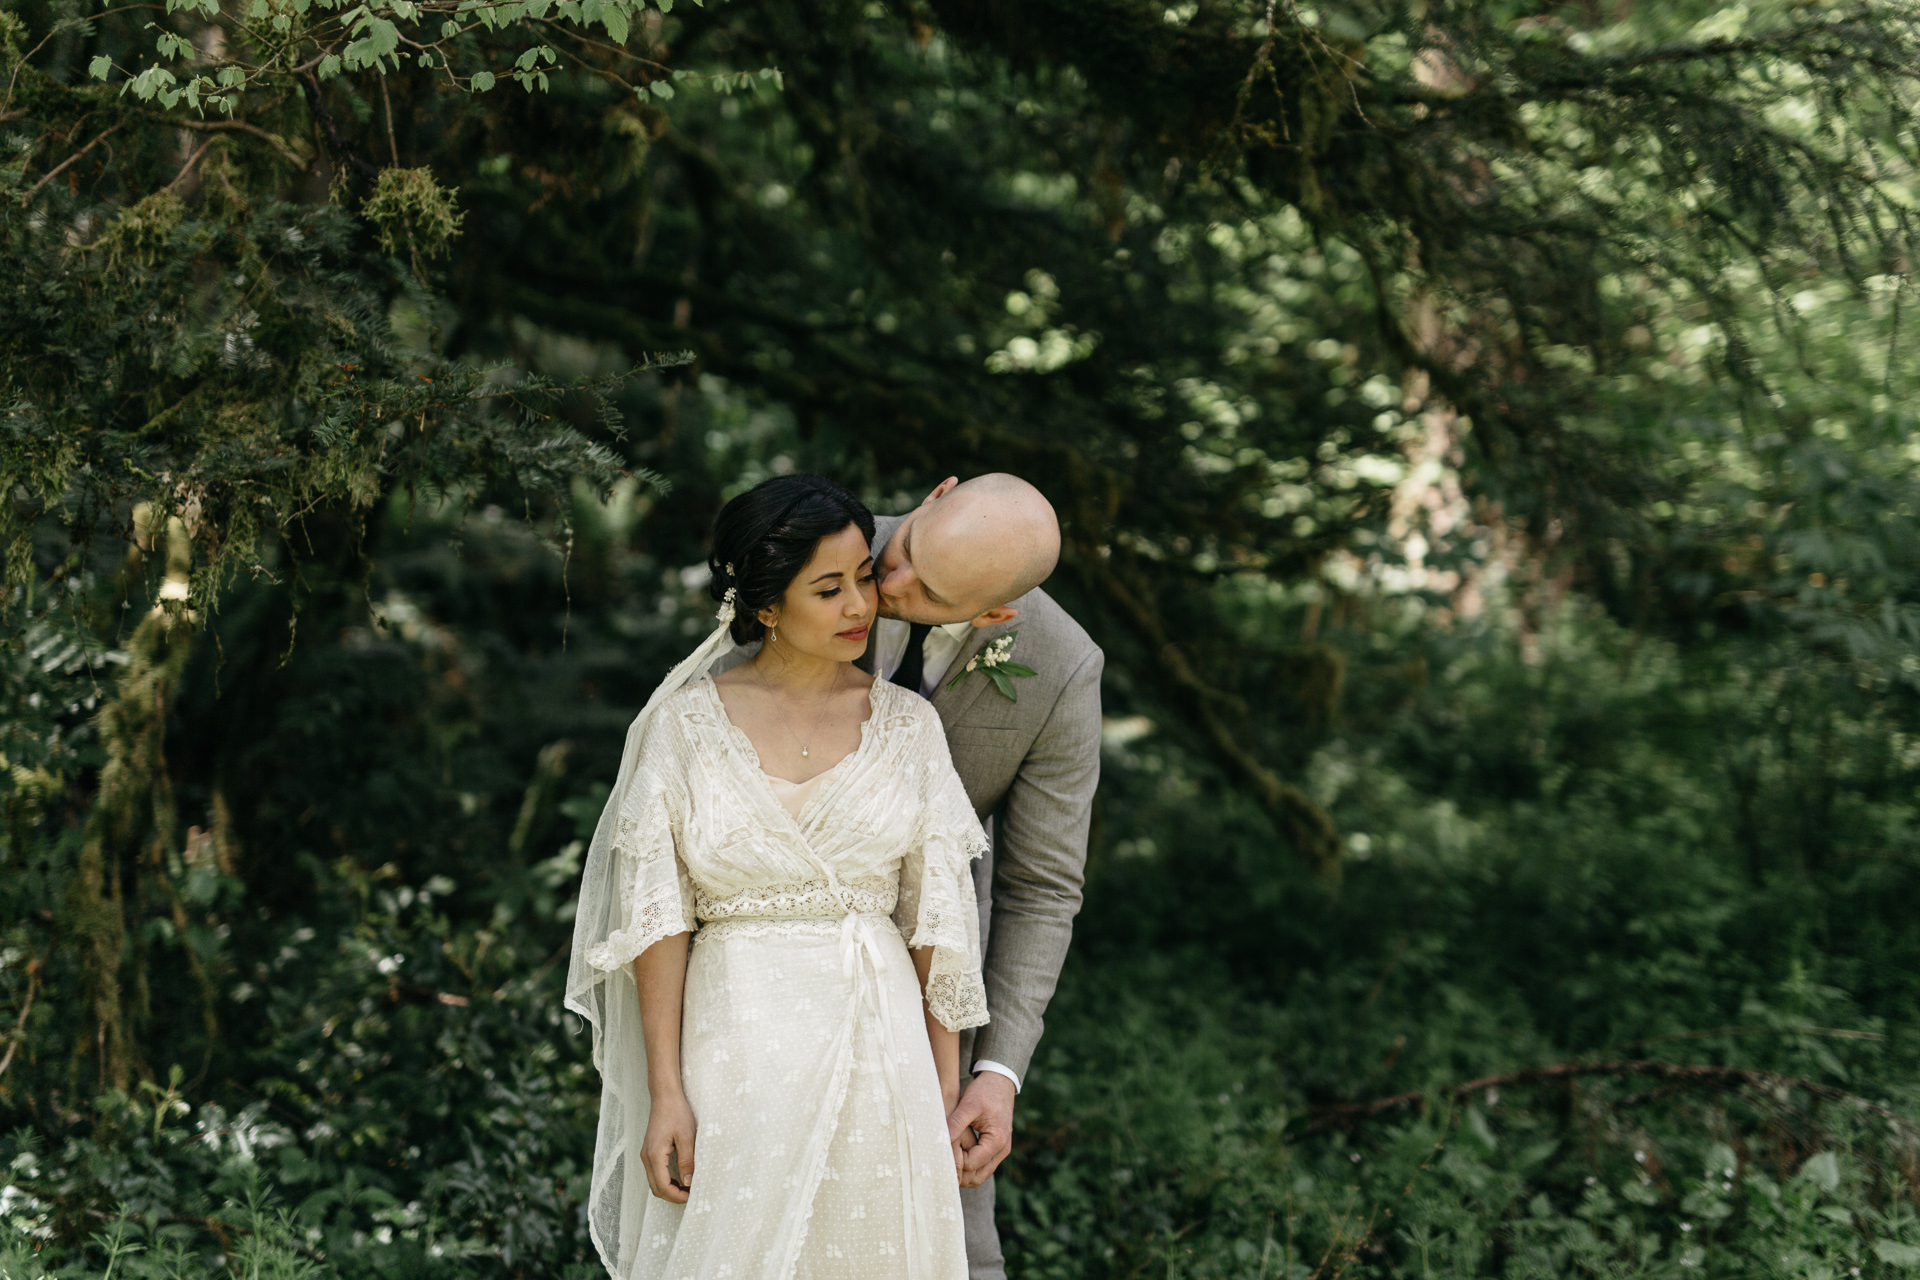 photography by Jess Hunter, intimate Portland wedding photographer, botanical inspired wedding in Portland, OR at a pioneer church, vintage lace wedding dress, hipster Portland wedding, elopement in the forests of Oregon, forest bride, vintage bridal style, Jessica L Hunter, Seattle elopement photographer, PDX wedding, vintage Pacific Northwest wedding, artistic wedding photography, emotive wedding photographer, florals by Ponderosa and Thyme